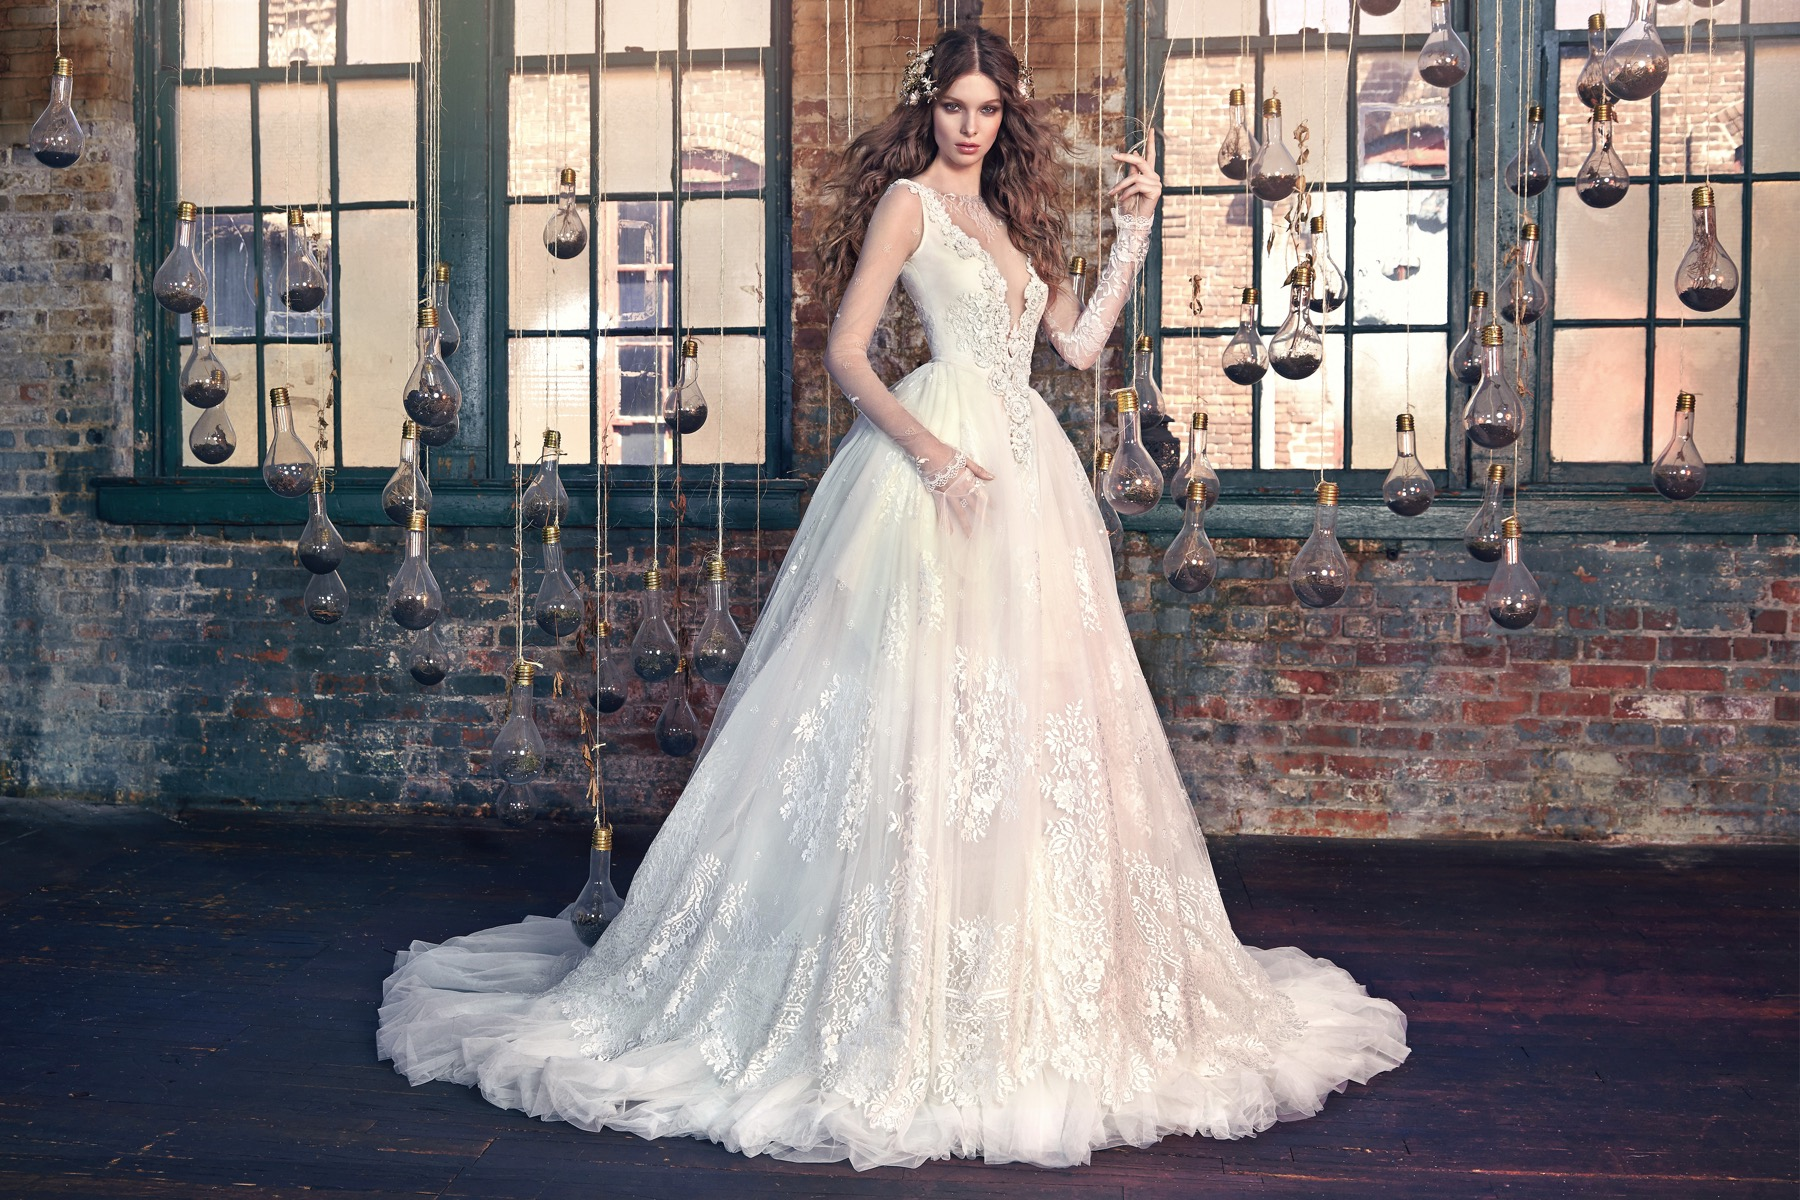 galia lahav wedding dresses les reves bohemians galia lahav wedding dresses Galia Lahav Wedding Dresses Les Reves Bohemians